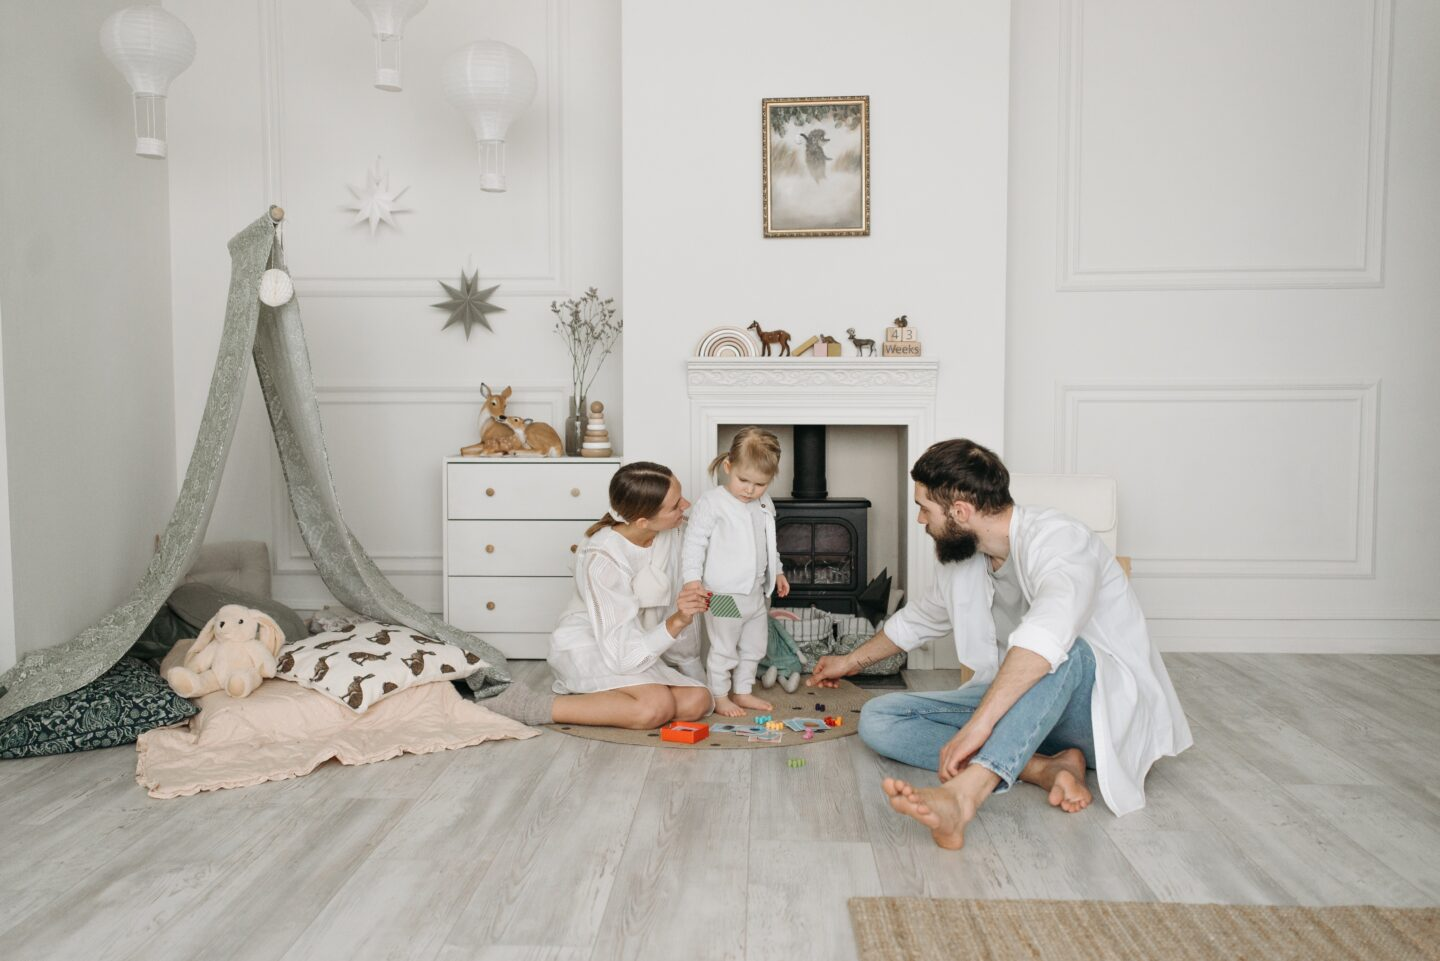 Planning to redecorate your child's bedroom with them